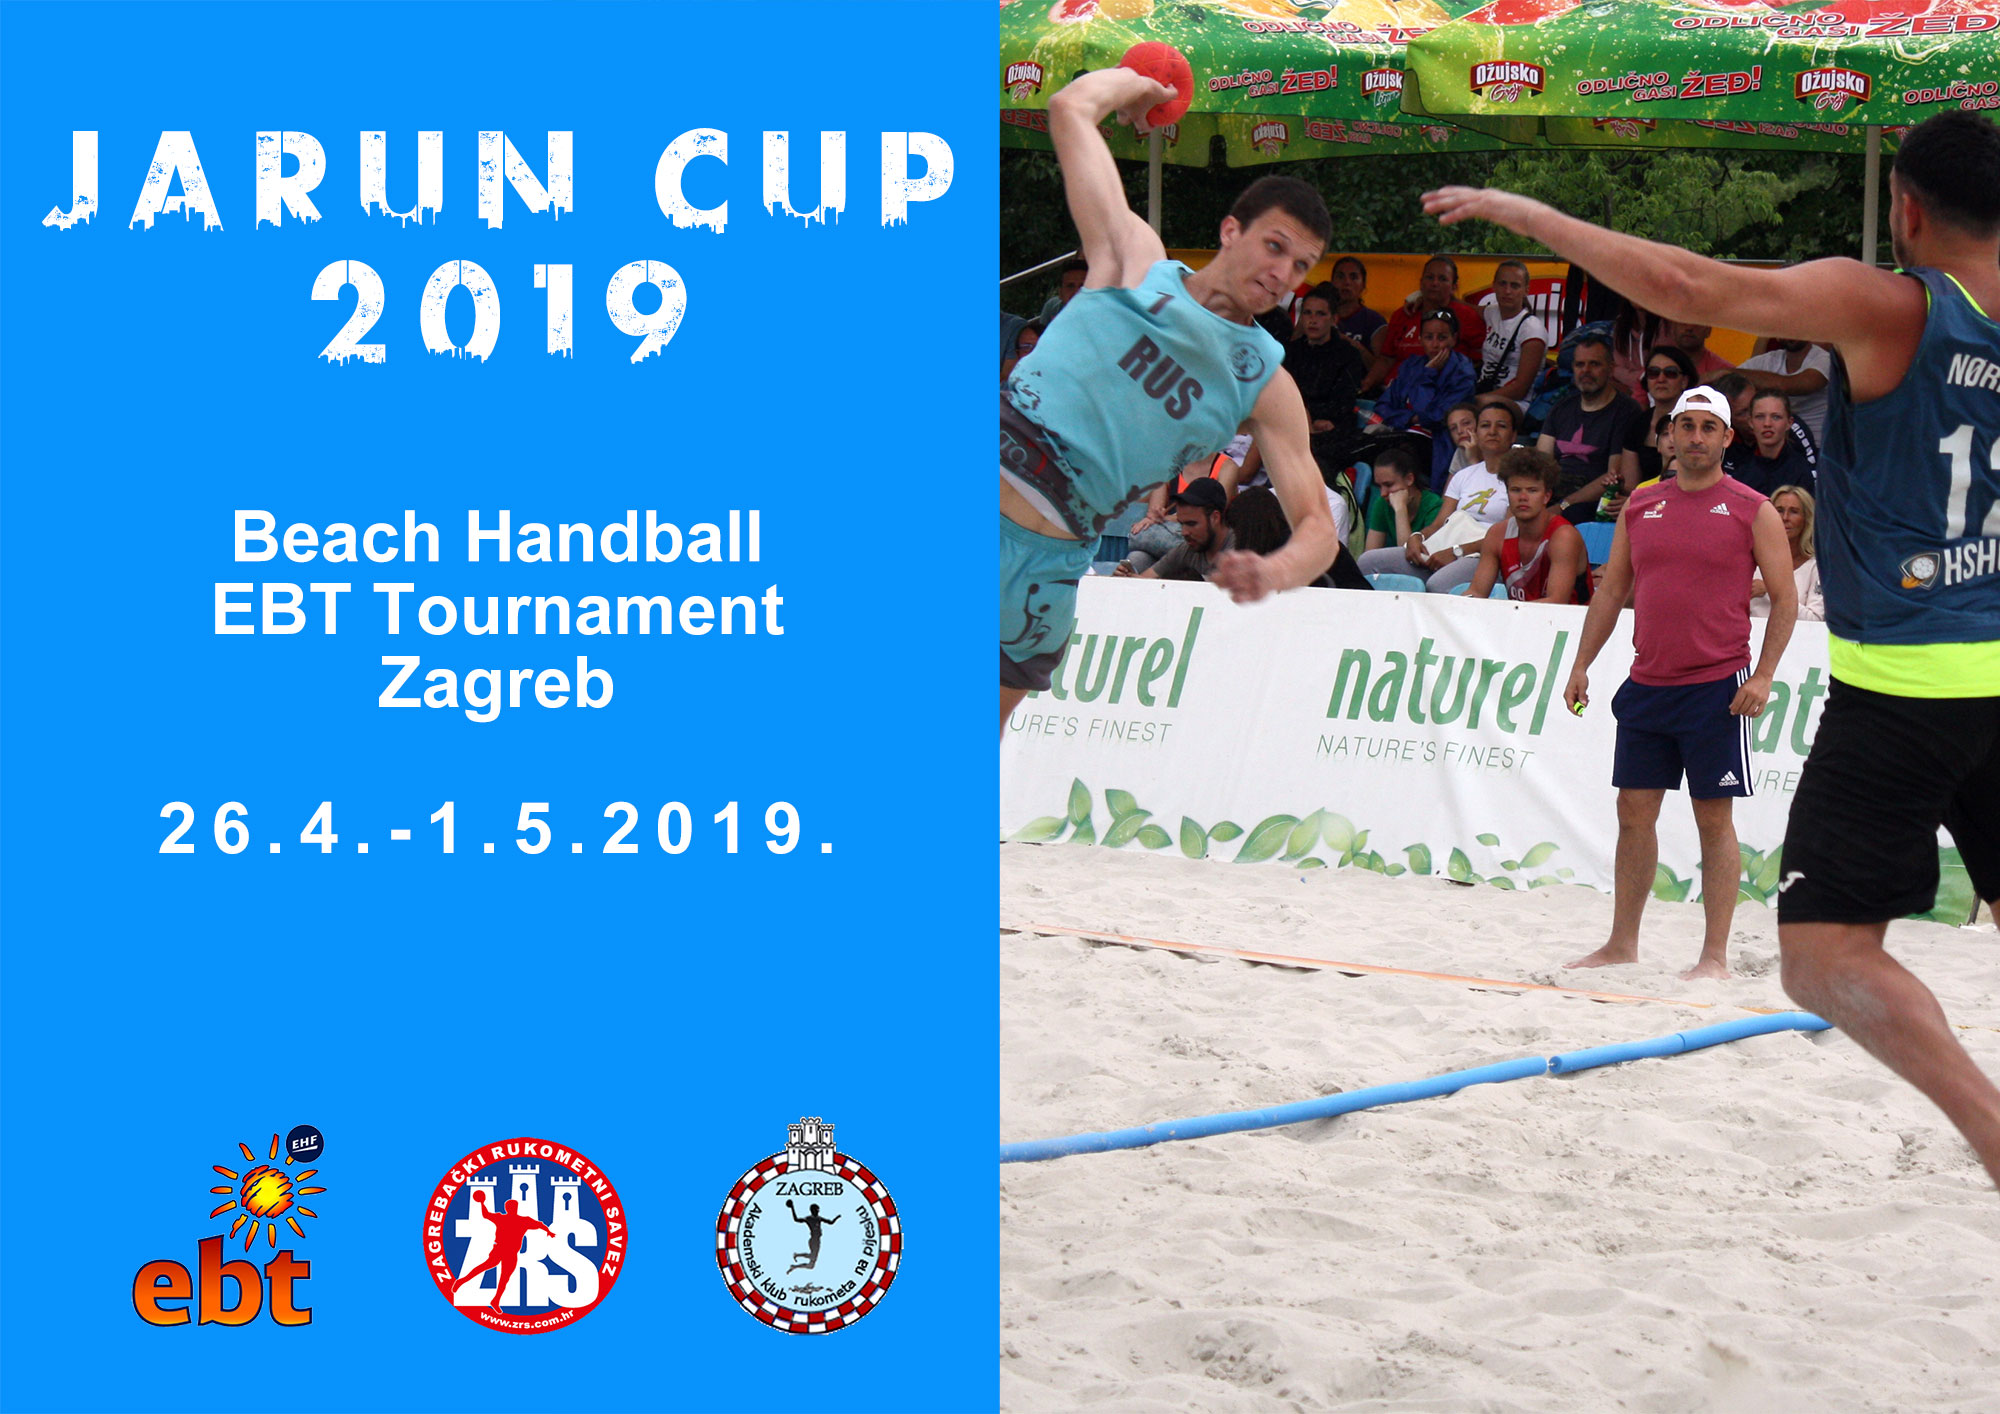 2019 Jarun cup invitation cover